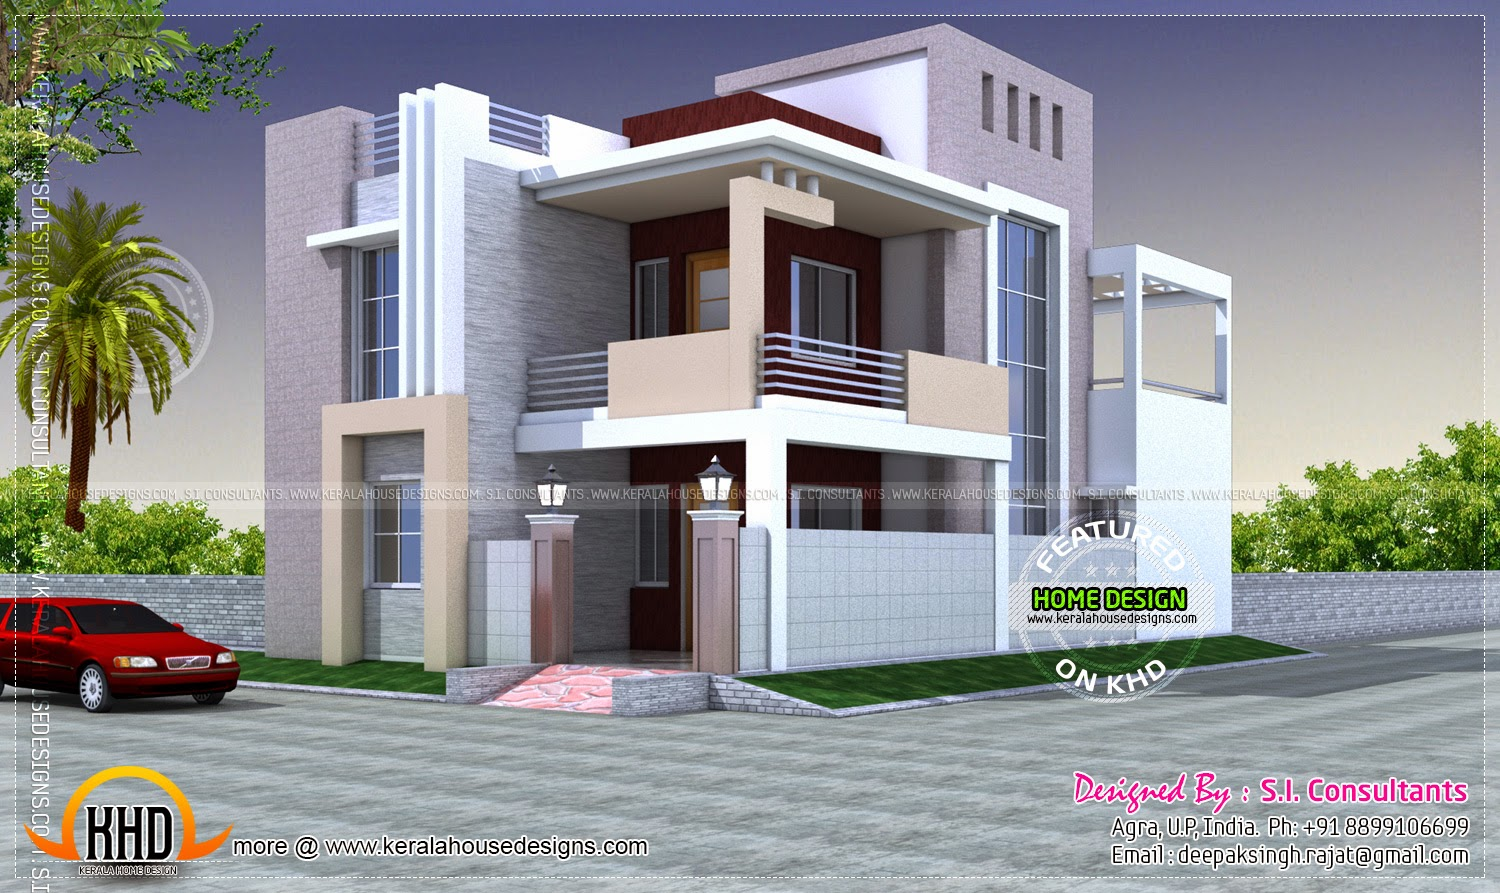 House exterior elevation modern style kerala home design for Exterior design building